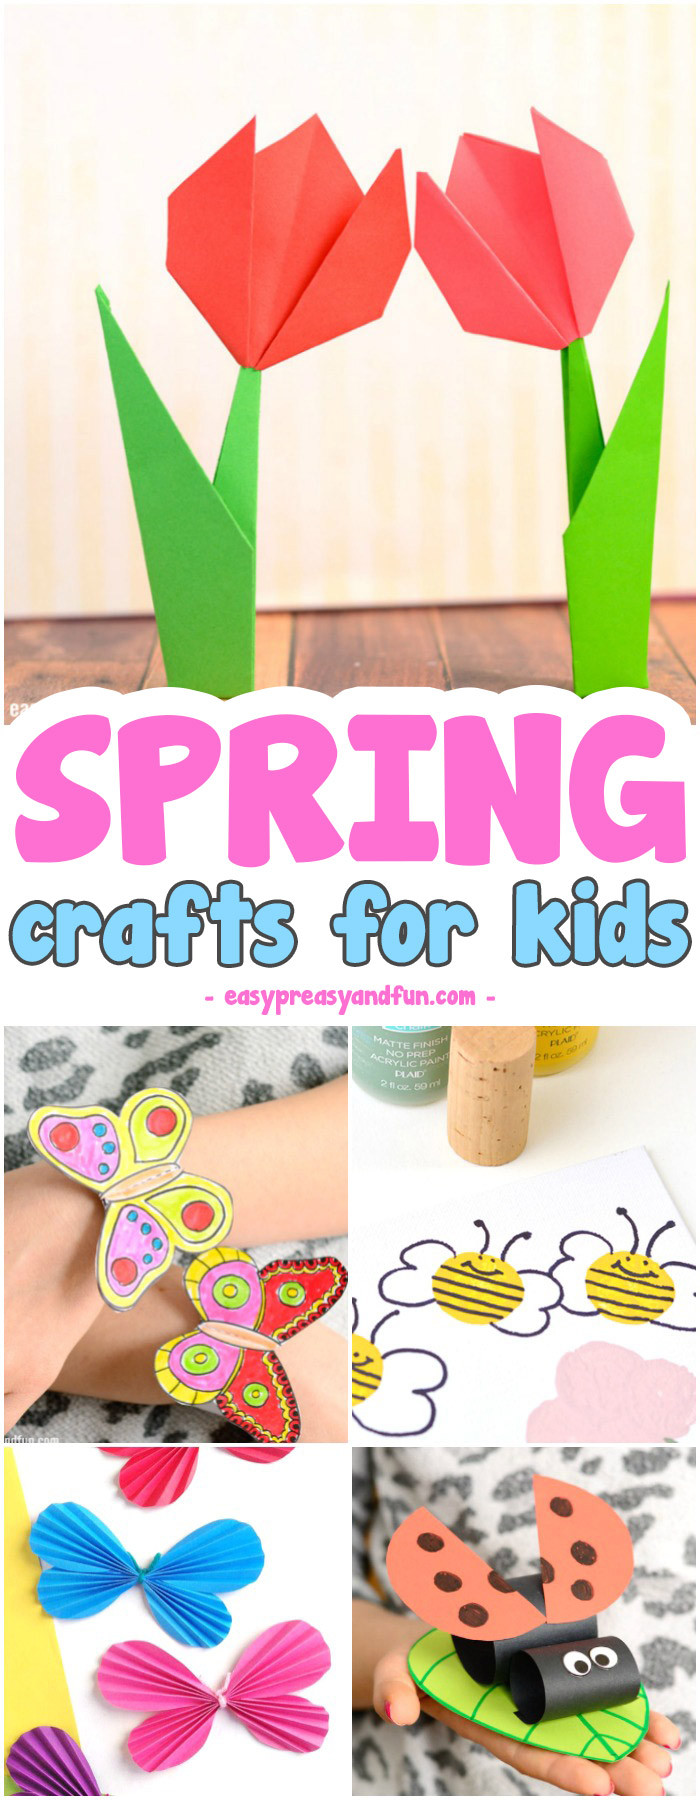 Art And Craft For Kids  Spring Crafts for Kids Art and Craft Project Ideas for